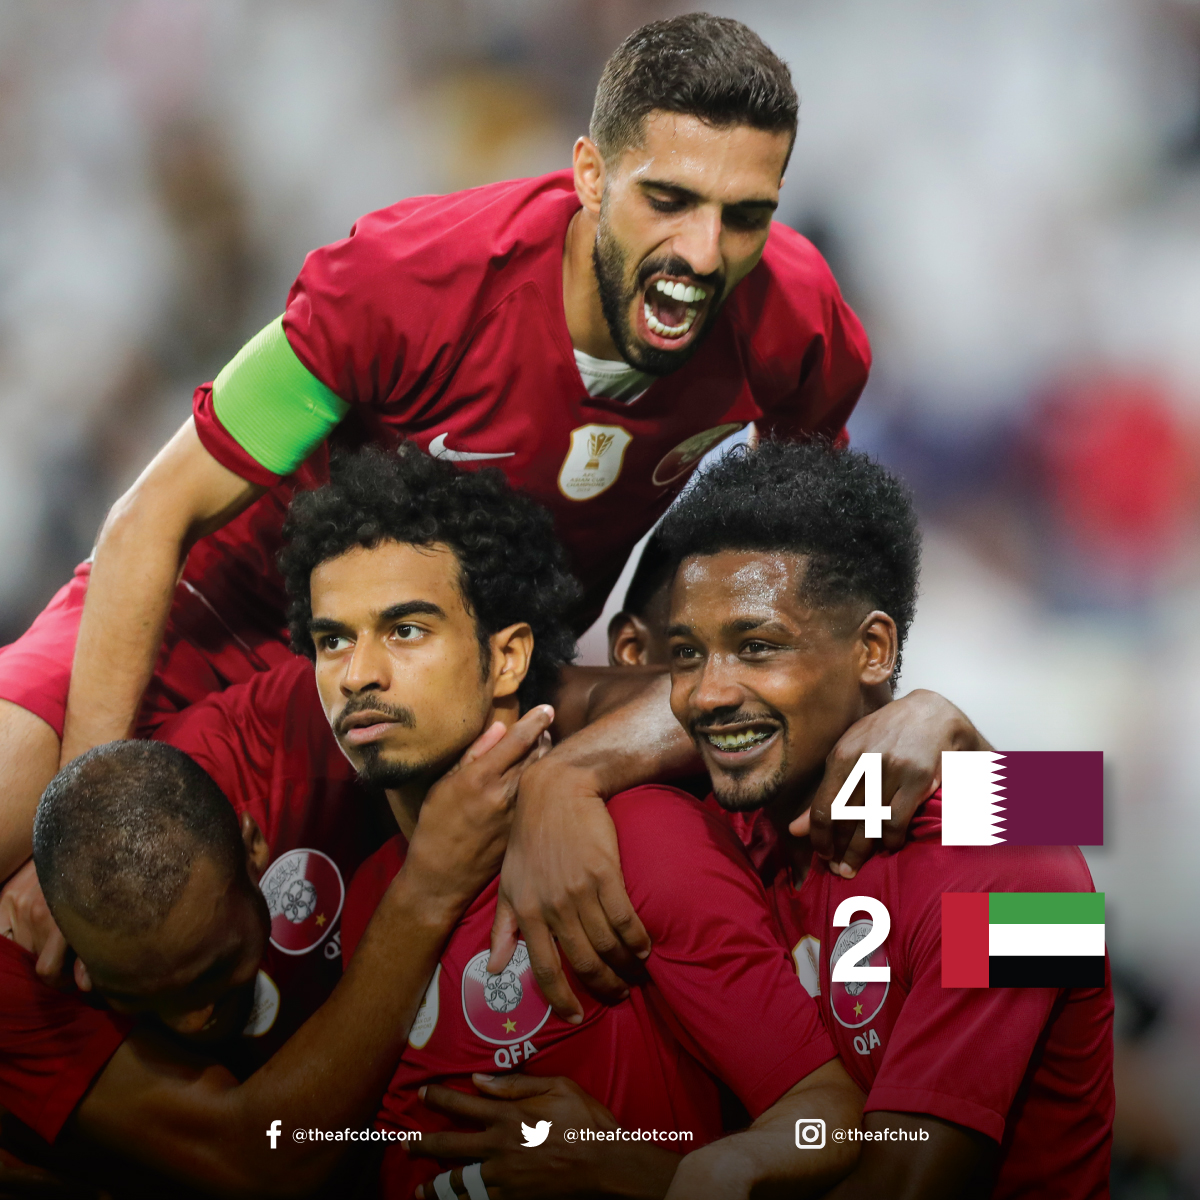 The newly crowned AFC Player of the Year, Akram Afif bags two goals as 🇶🇦 win over 🇦🇪! A draw is enough for 🇮🇶 to finish as Group A winners! #GulfCup